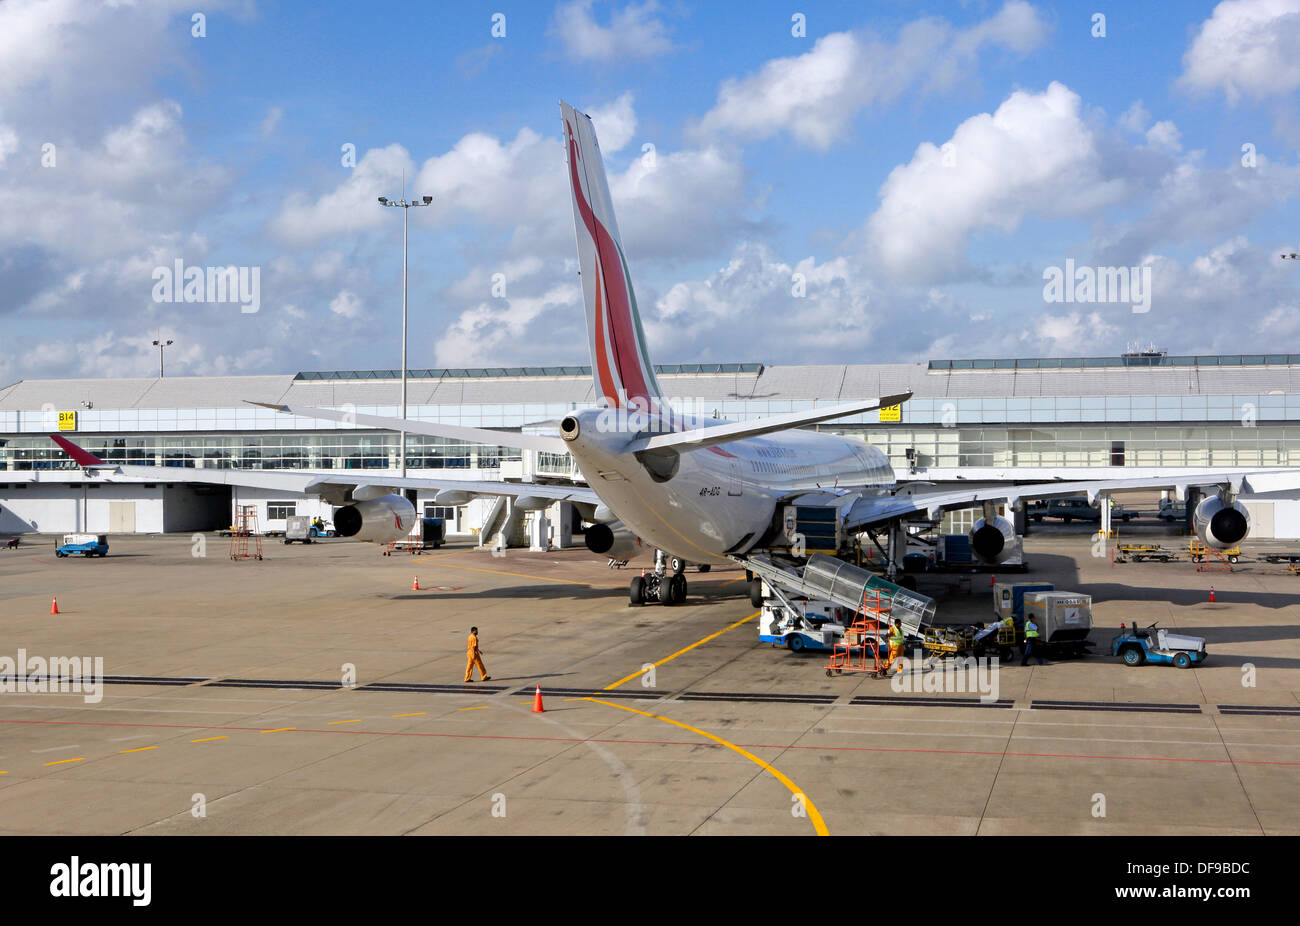 Jet airliner on tarmac at Phuket airport - Stock Image